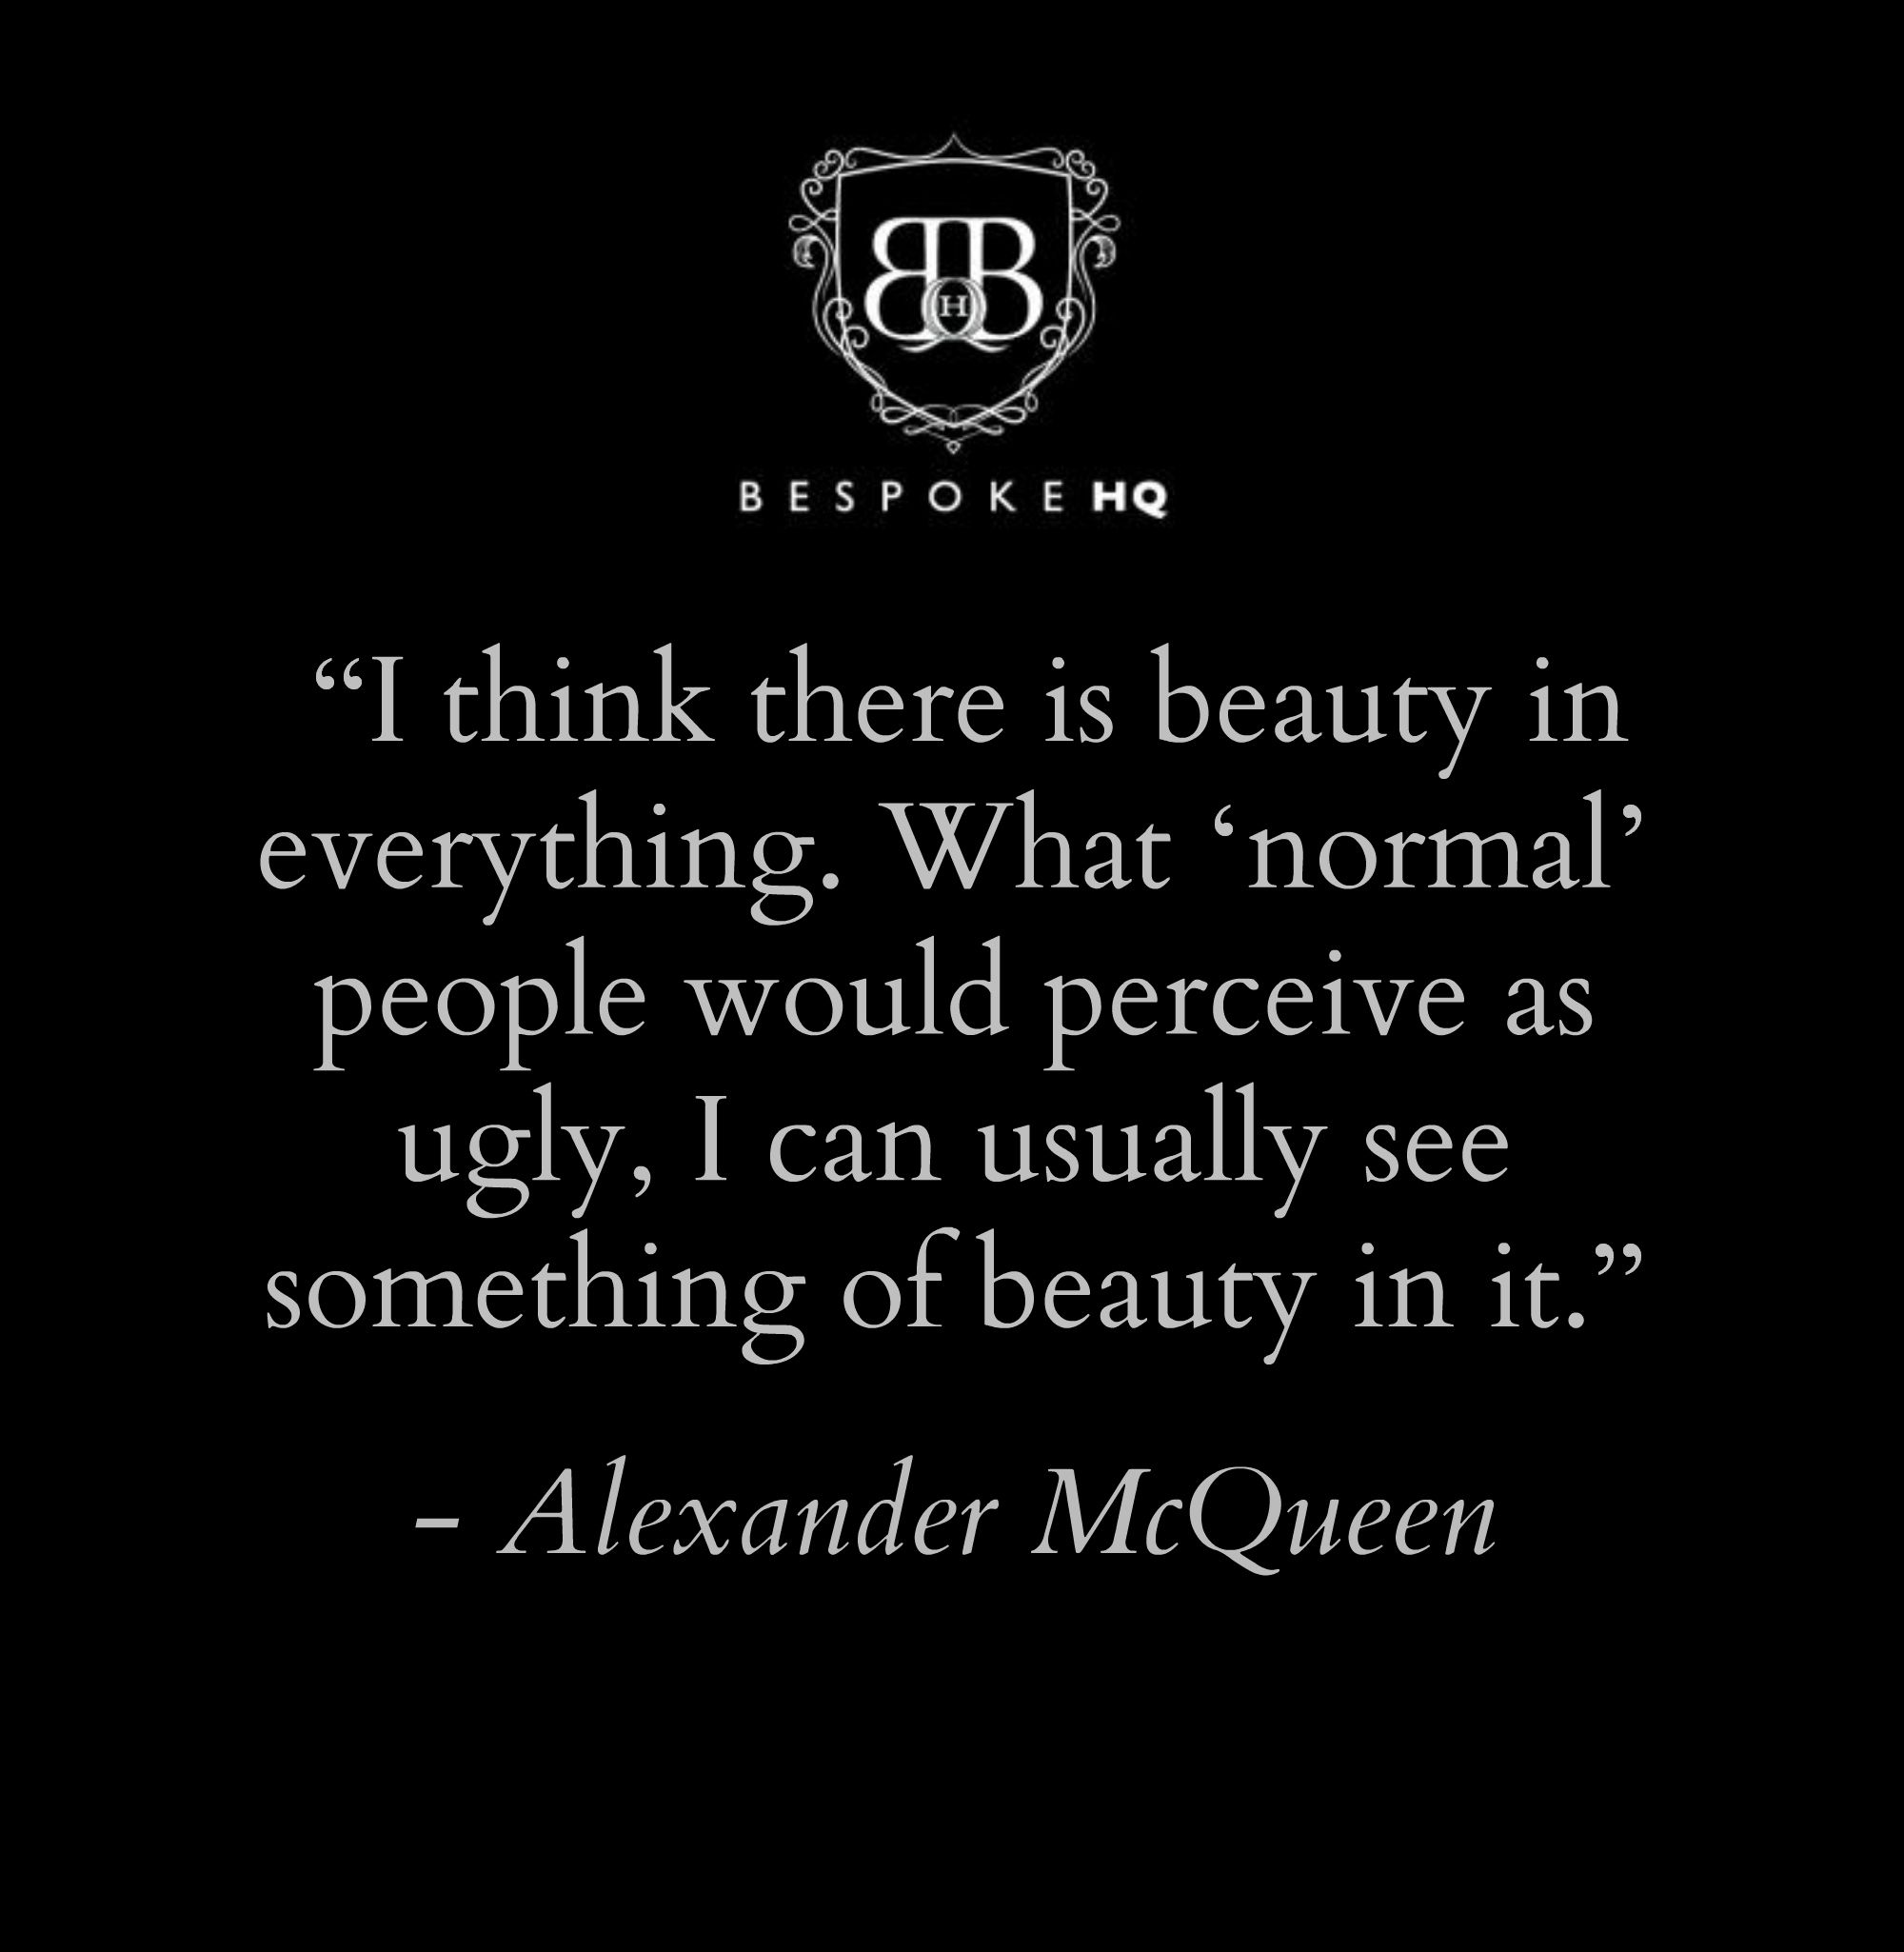 Alexander McQueen - Famous Quotes Laminated POSTER PRINT 24x20 - It\'s good  to know where you come from. It makes you what you are today. It\'s DNA, ...